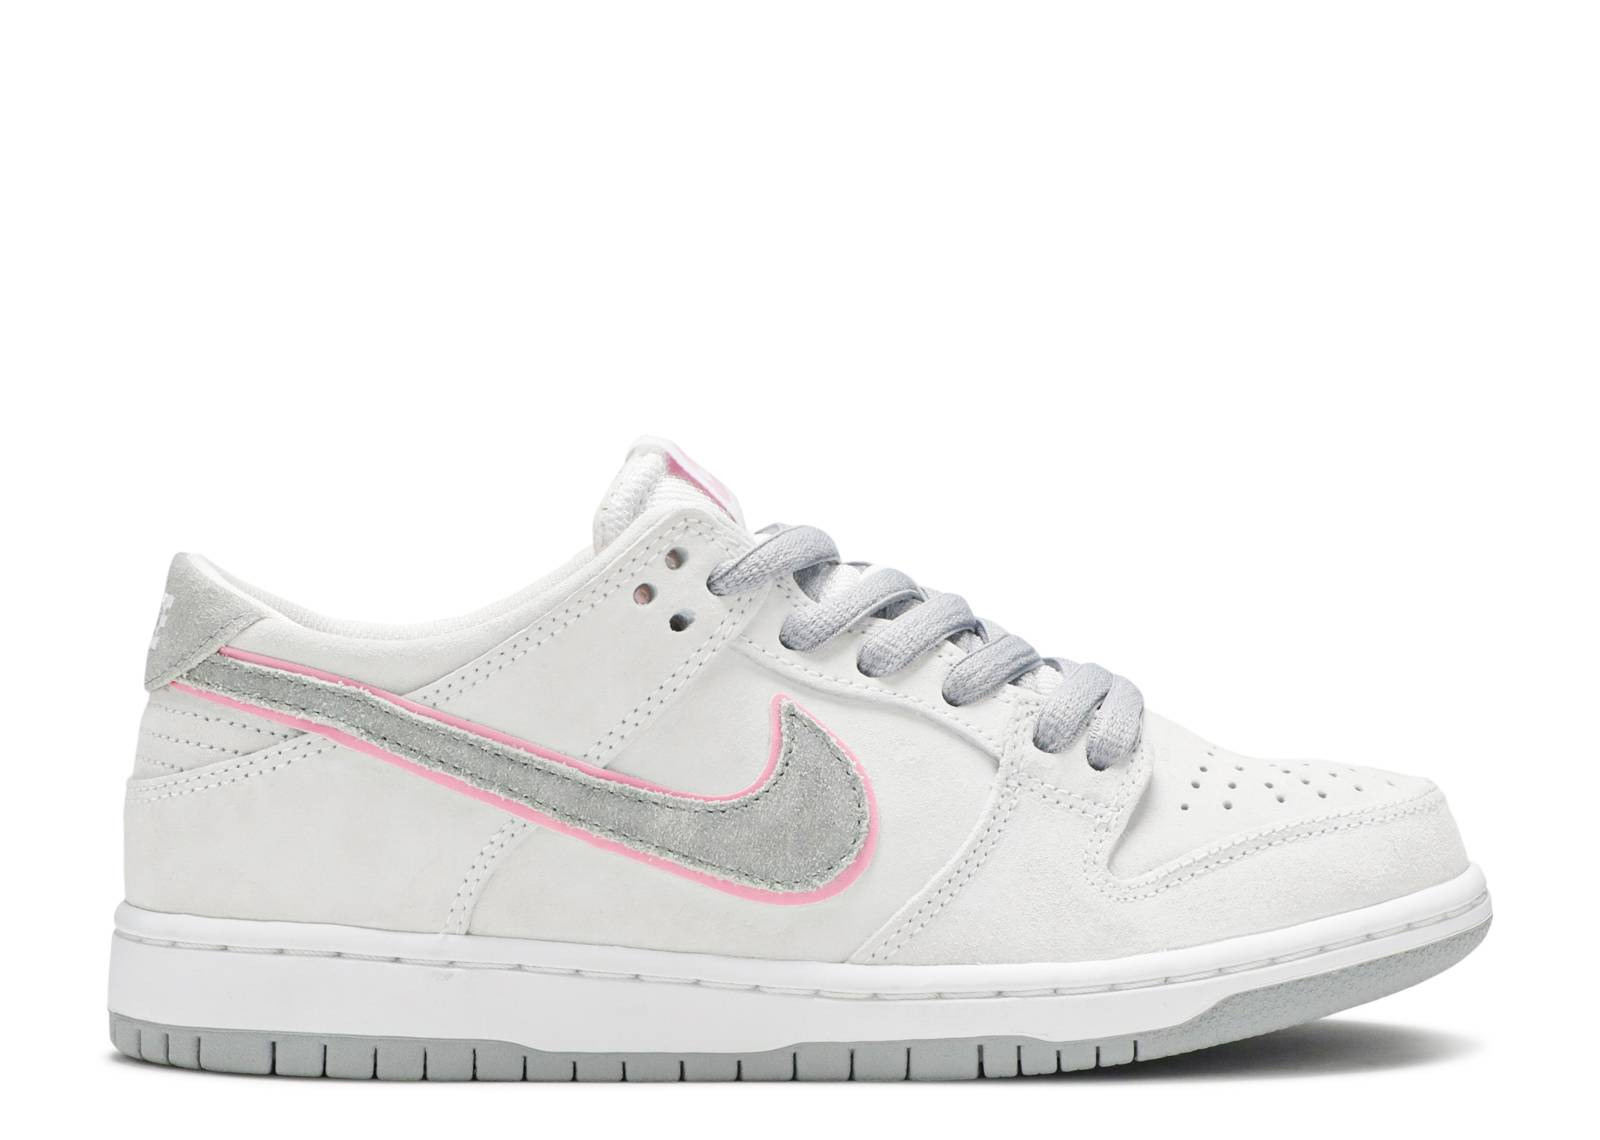 Nike Sb Dunk Low Pro Iw - Nike - 895969 160 - white perfect pink-flt ... 5531abae3